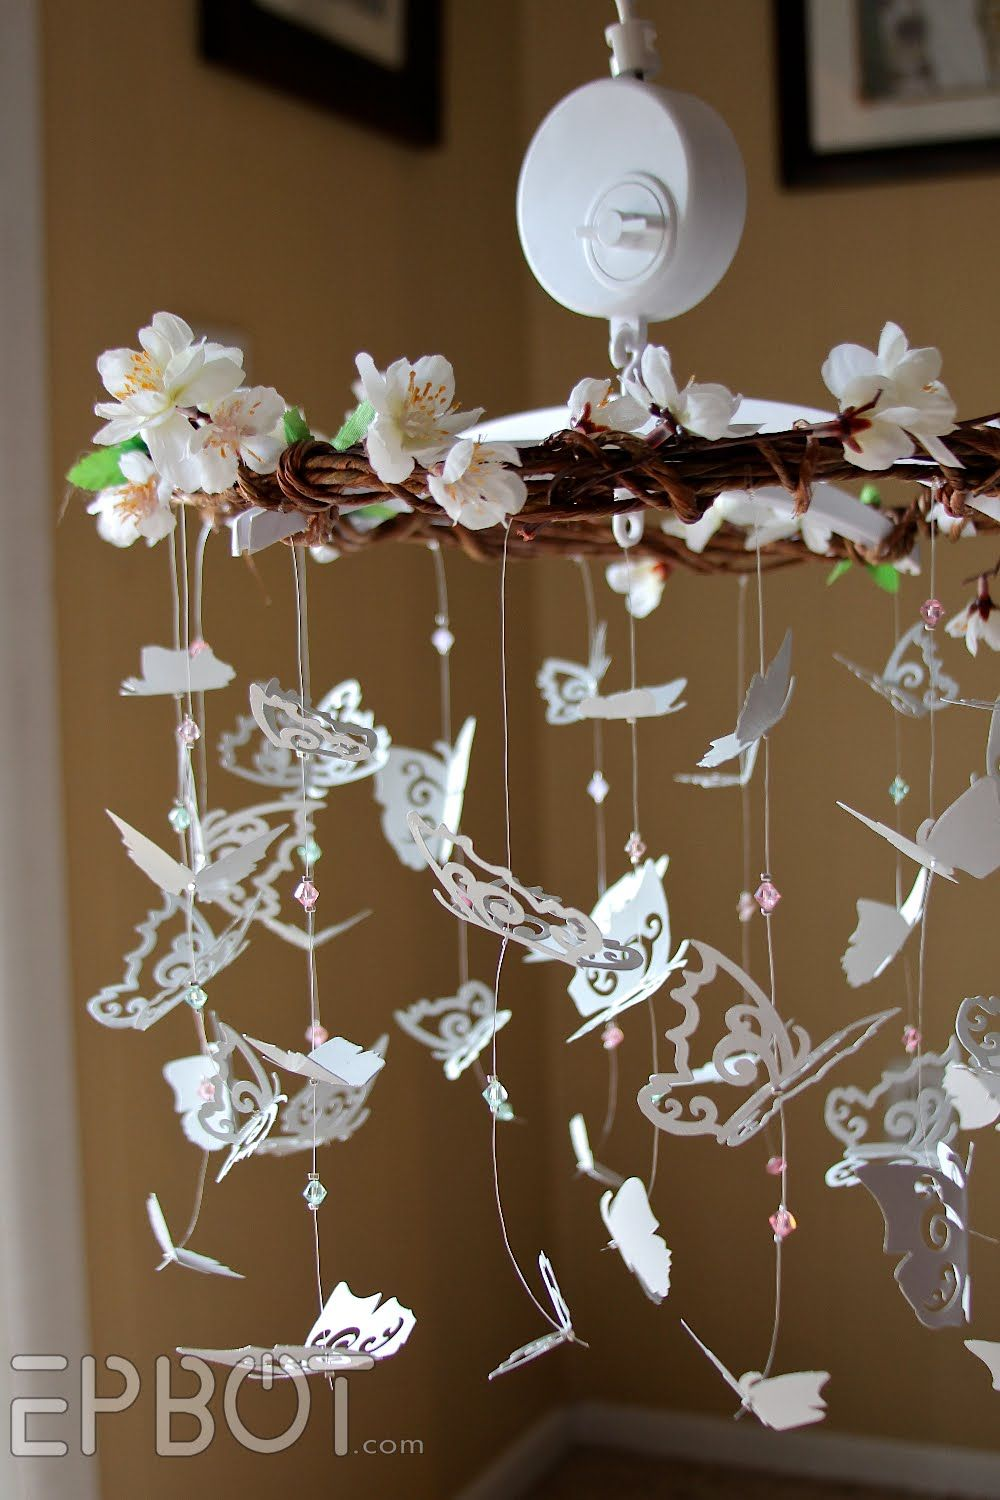 Diy butterfly mobile butterfly chandelier mobile - Sweet Diy Butterfly Mobile Without The Flowers Or Wood Making The Butterflies